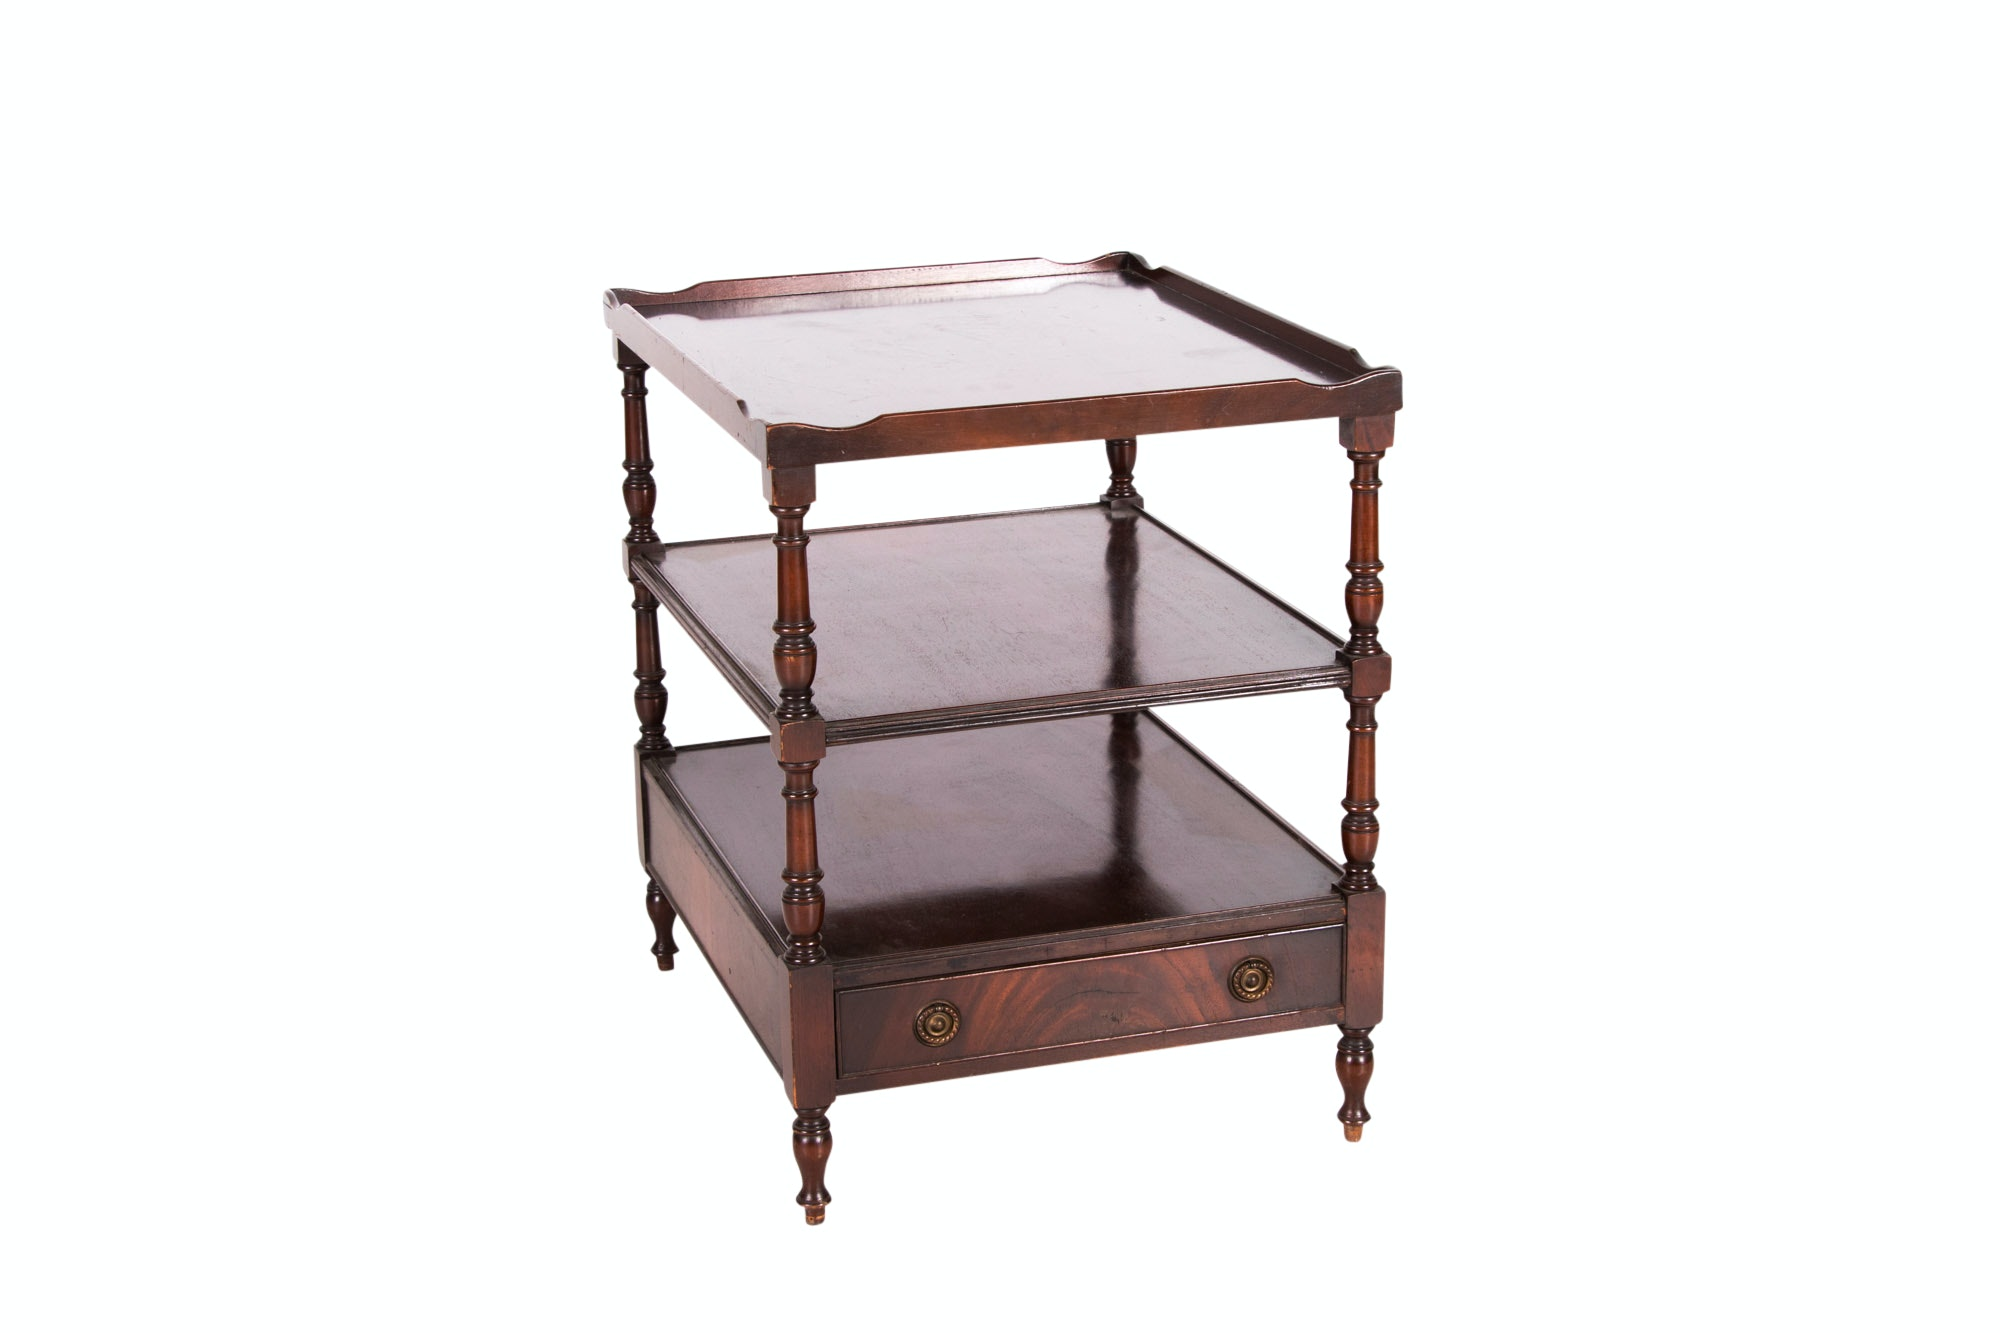 Regency Style Mahogany Three-Tier Side Table with Drawer, 20th Century